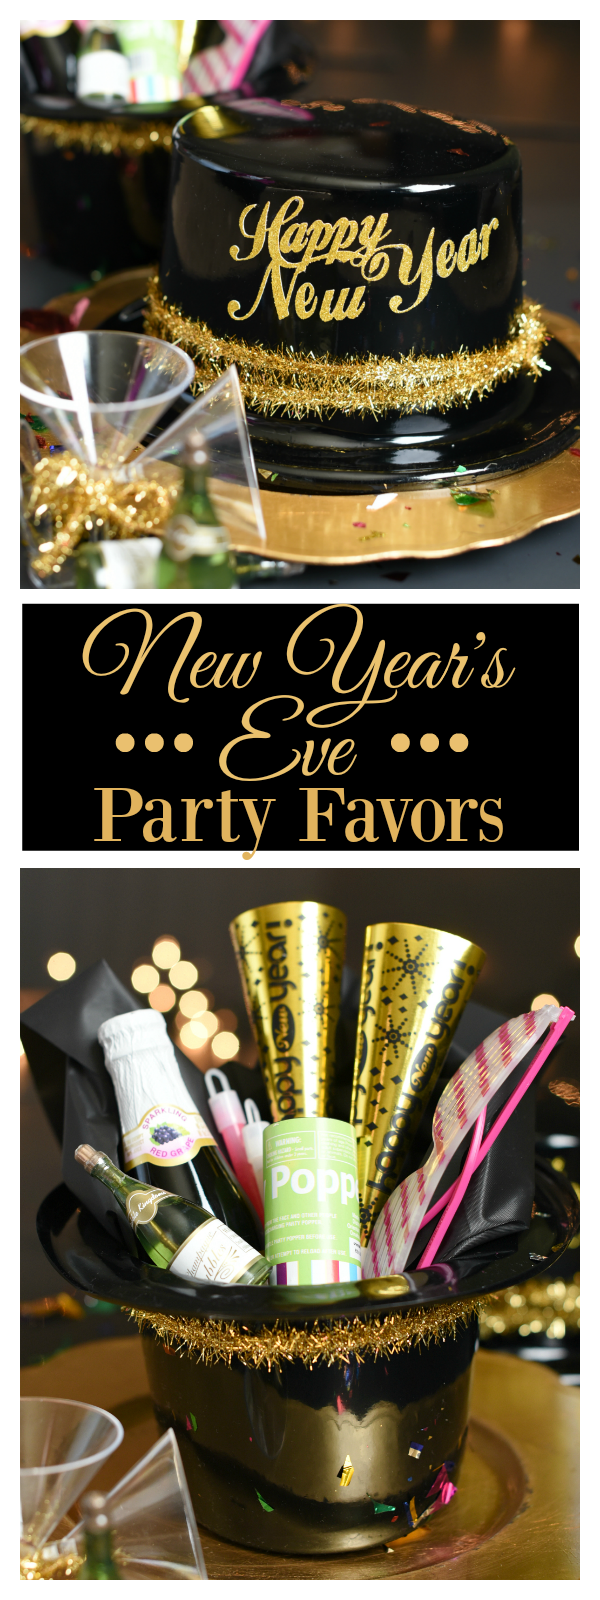 Simple New Year's Eve Party Favors – Fun-Squared